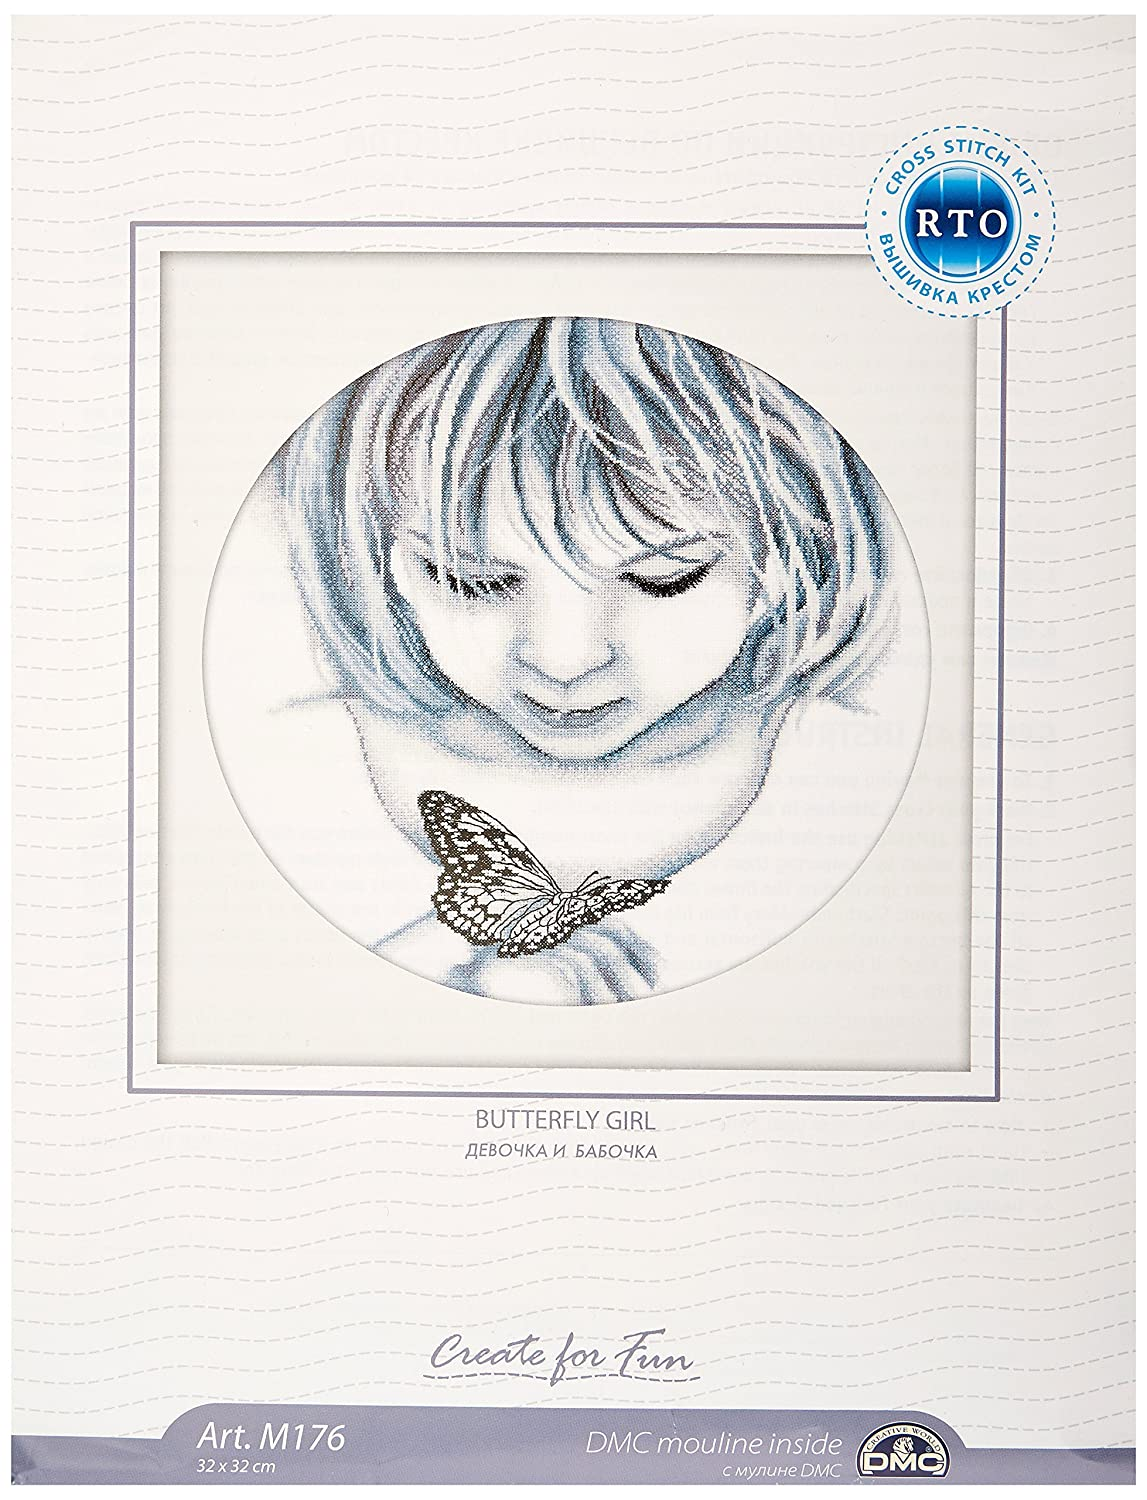 RTO Girl with Butterfly Counted Cross Stitch Kit, 12-1/2 by 12-1/2-Inch M176